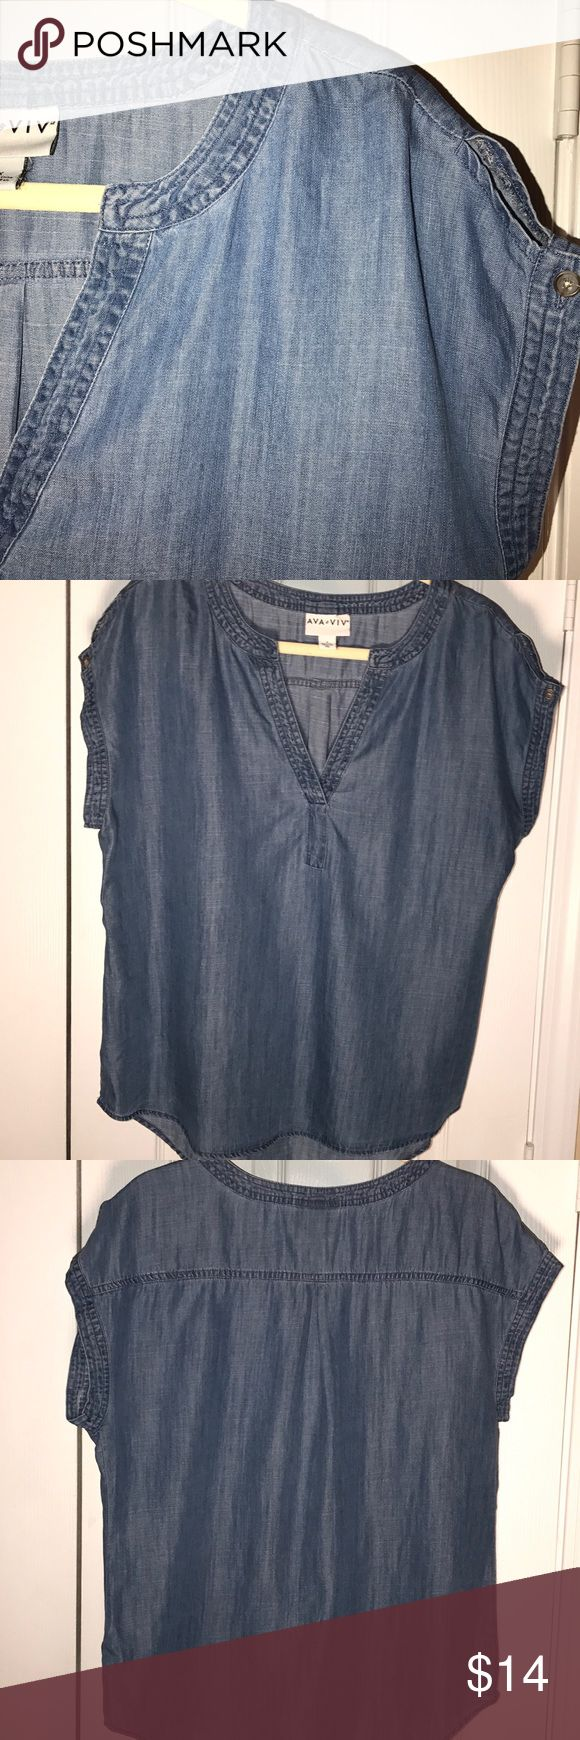 WOMEN'S LIGHT DENIM SHORT SLEEVE TOP NWOT AVA•VIV WOMEN'S SHORT SLEEVE, LIGHT WEIGHT CHAMBRAY SHIRT. SUPER CUTE & A GREAT ADDITION TO YOUR SUMMER WARDROBE! 🌸 AVA VIV Tops Blouses